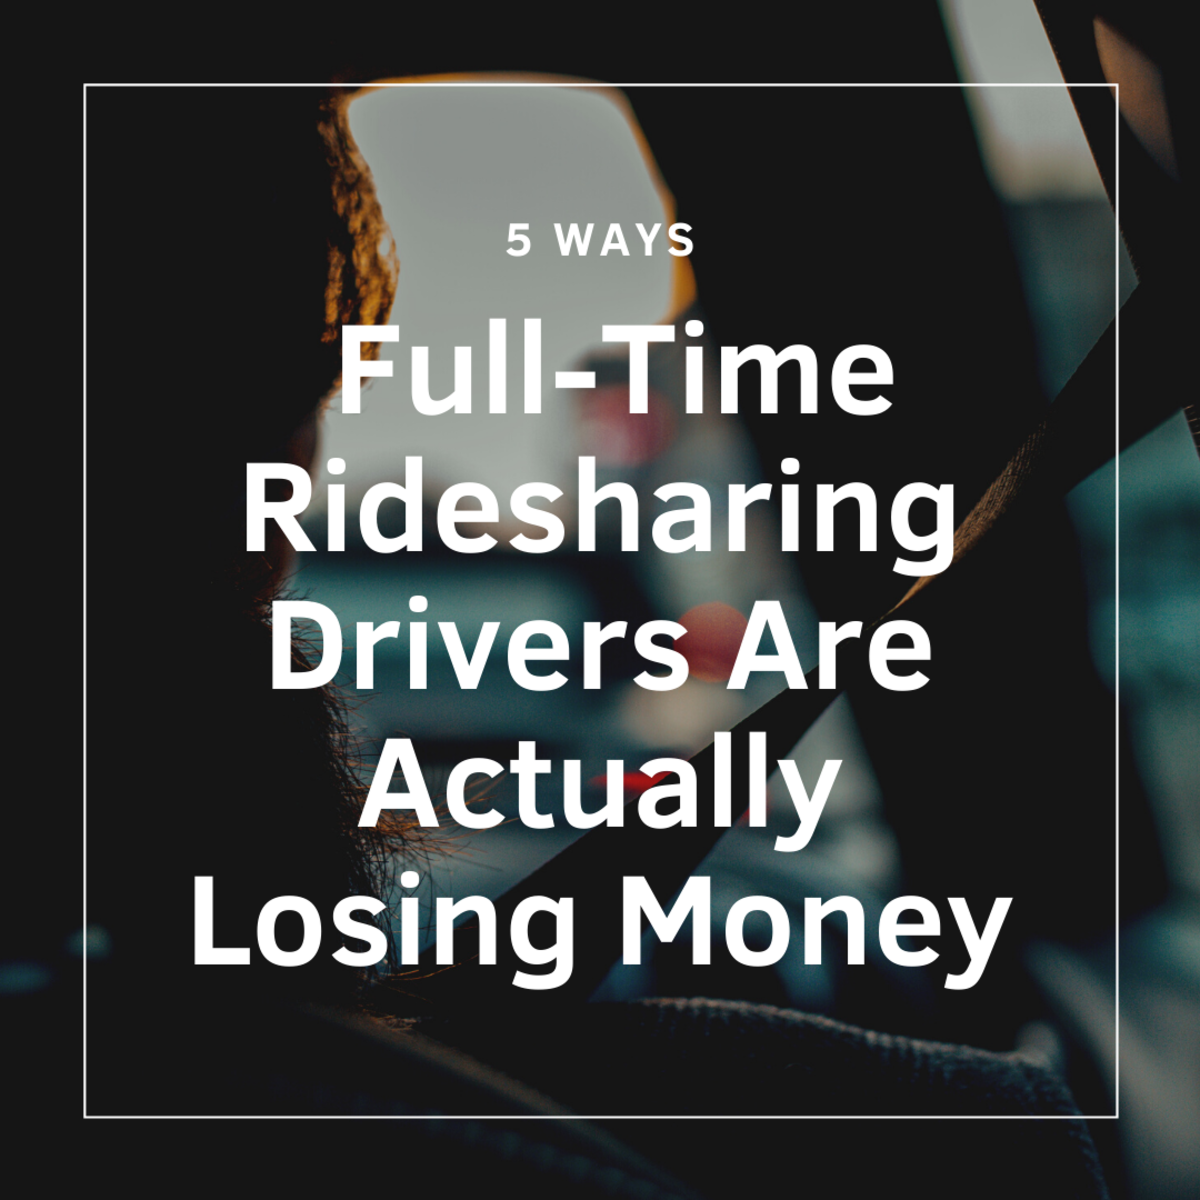 Ridesharing drivers don't earn as much as you'd think.